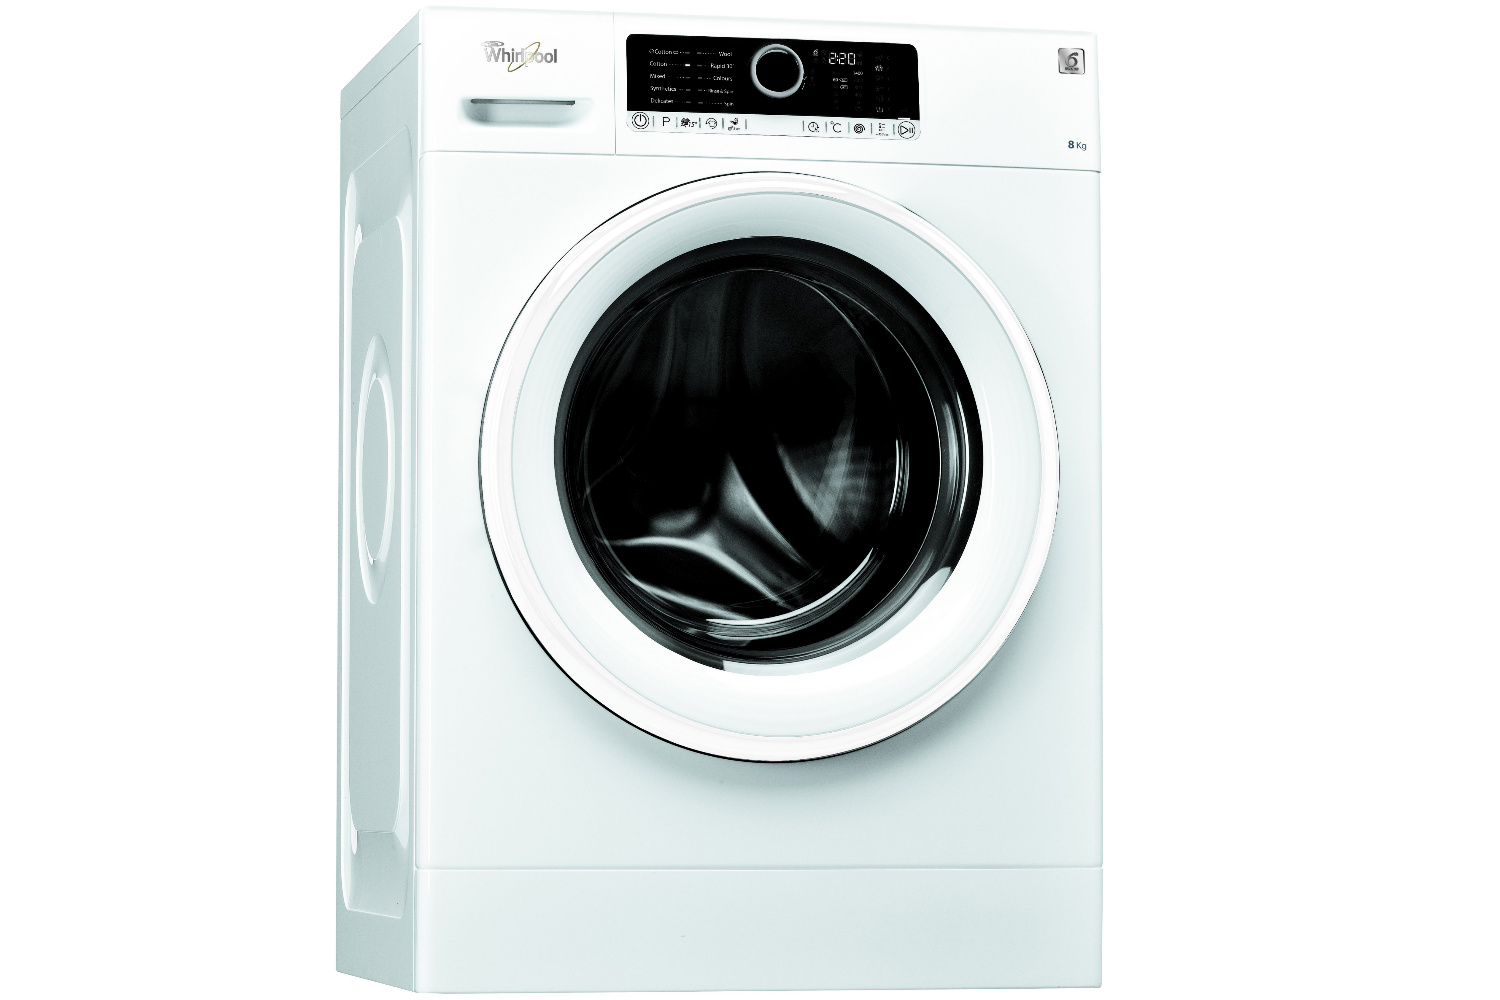 Washing machine for sale r 3 499 for sale whirlpool washing machine lg 7kg washing machine for - Interesting facts about washing machines ...